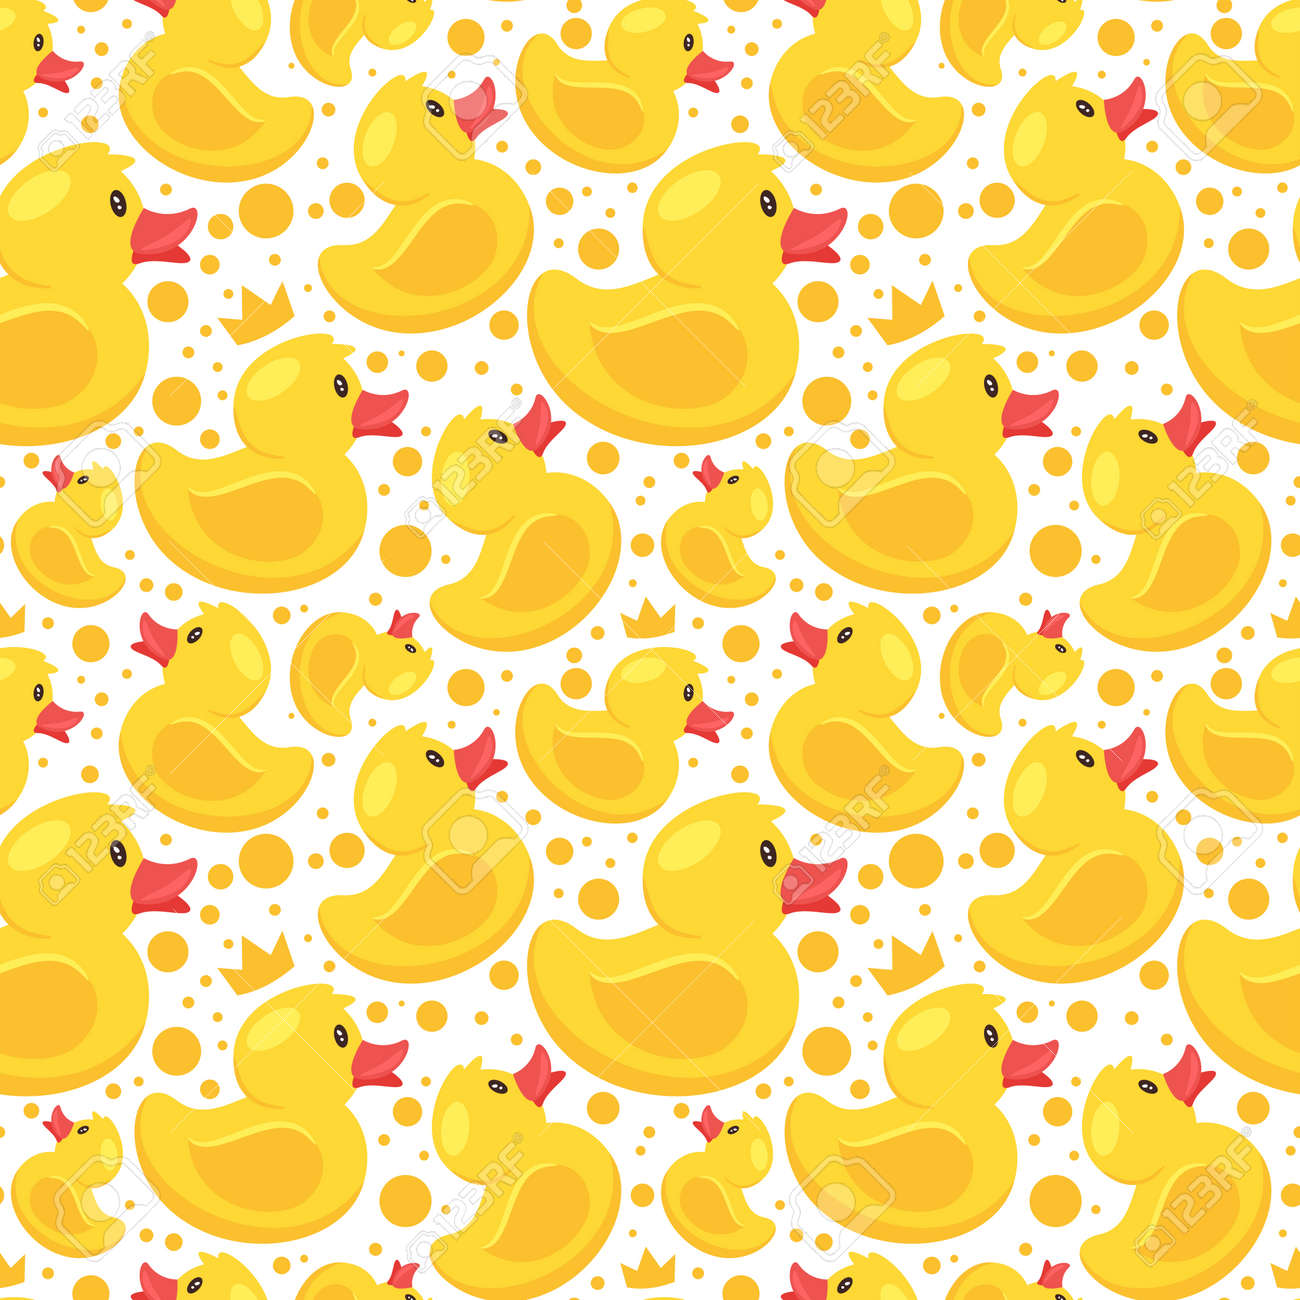 Vector cartoon style seamless pattern with yellow rubber duck on white background. - 110532494